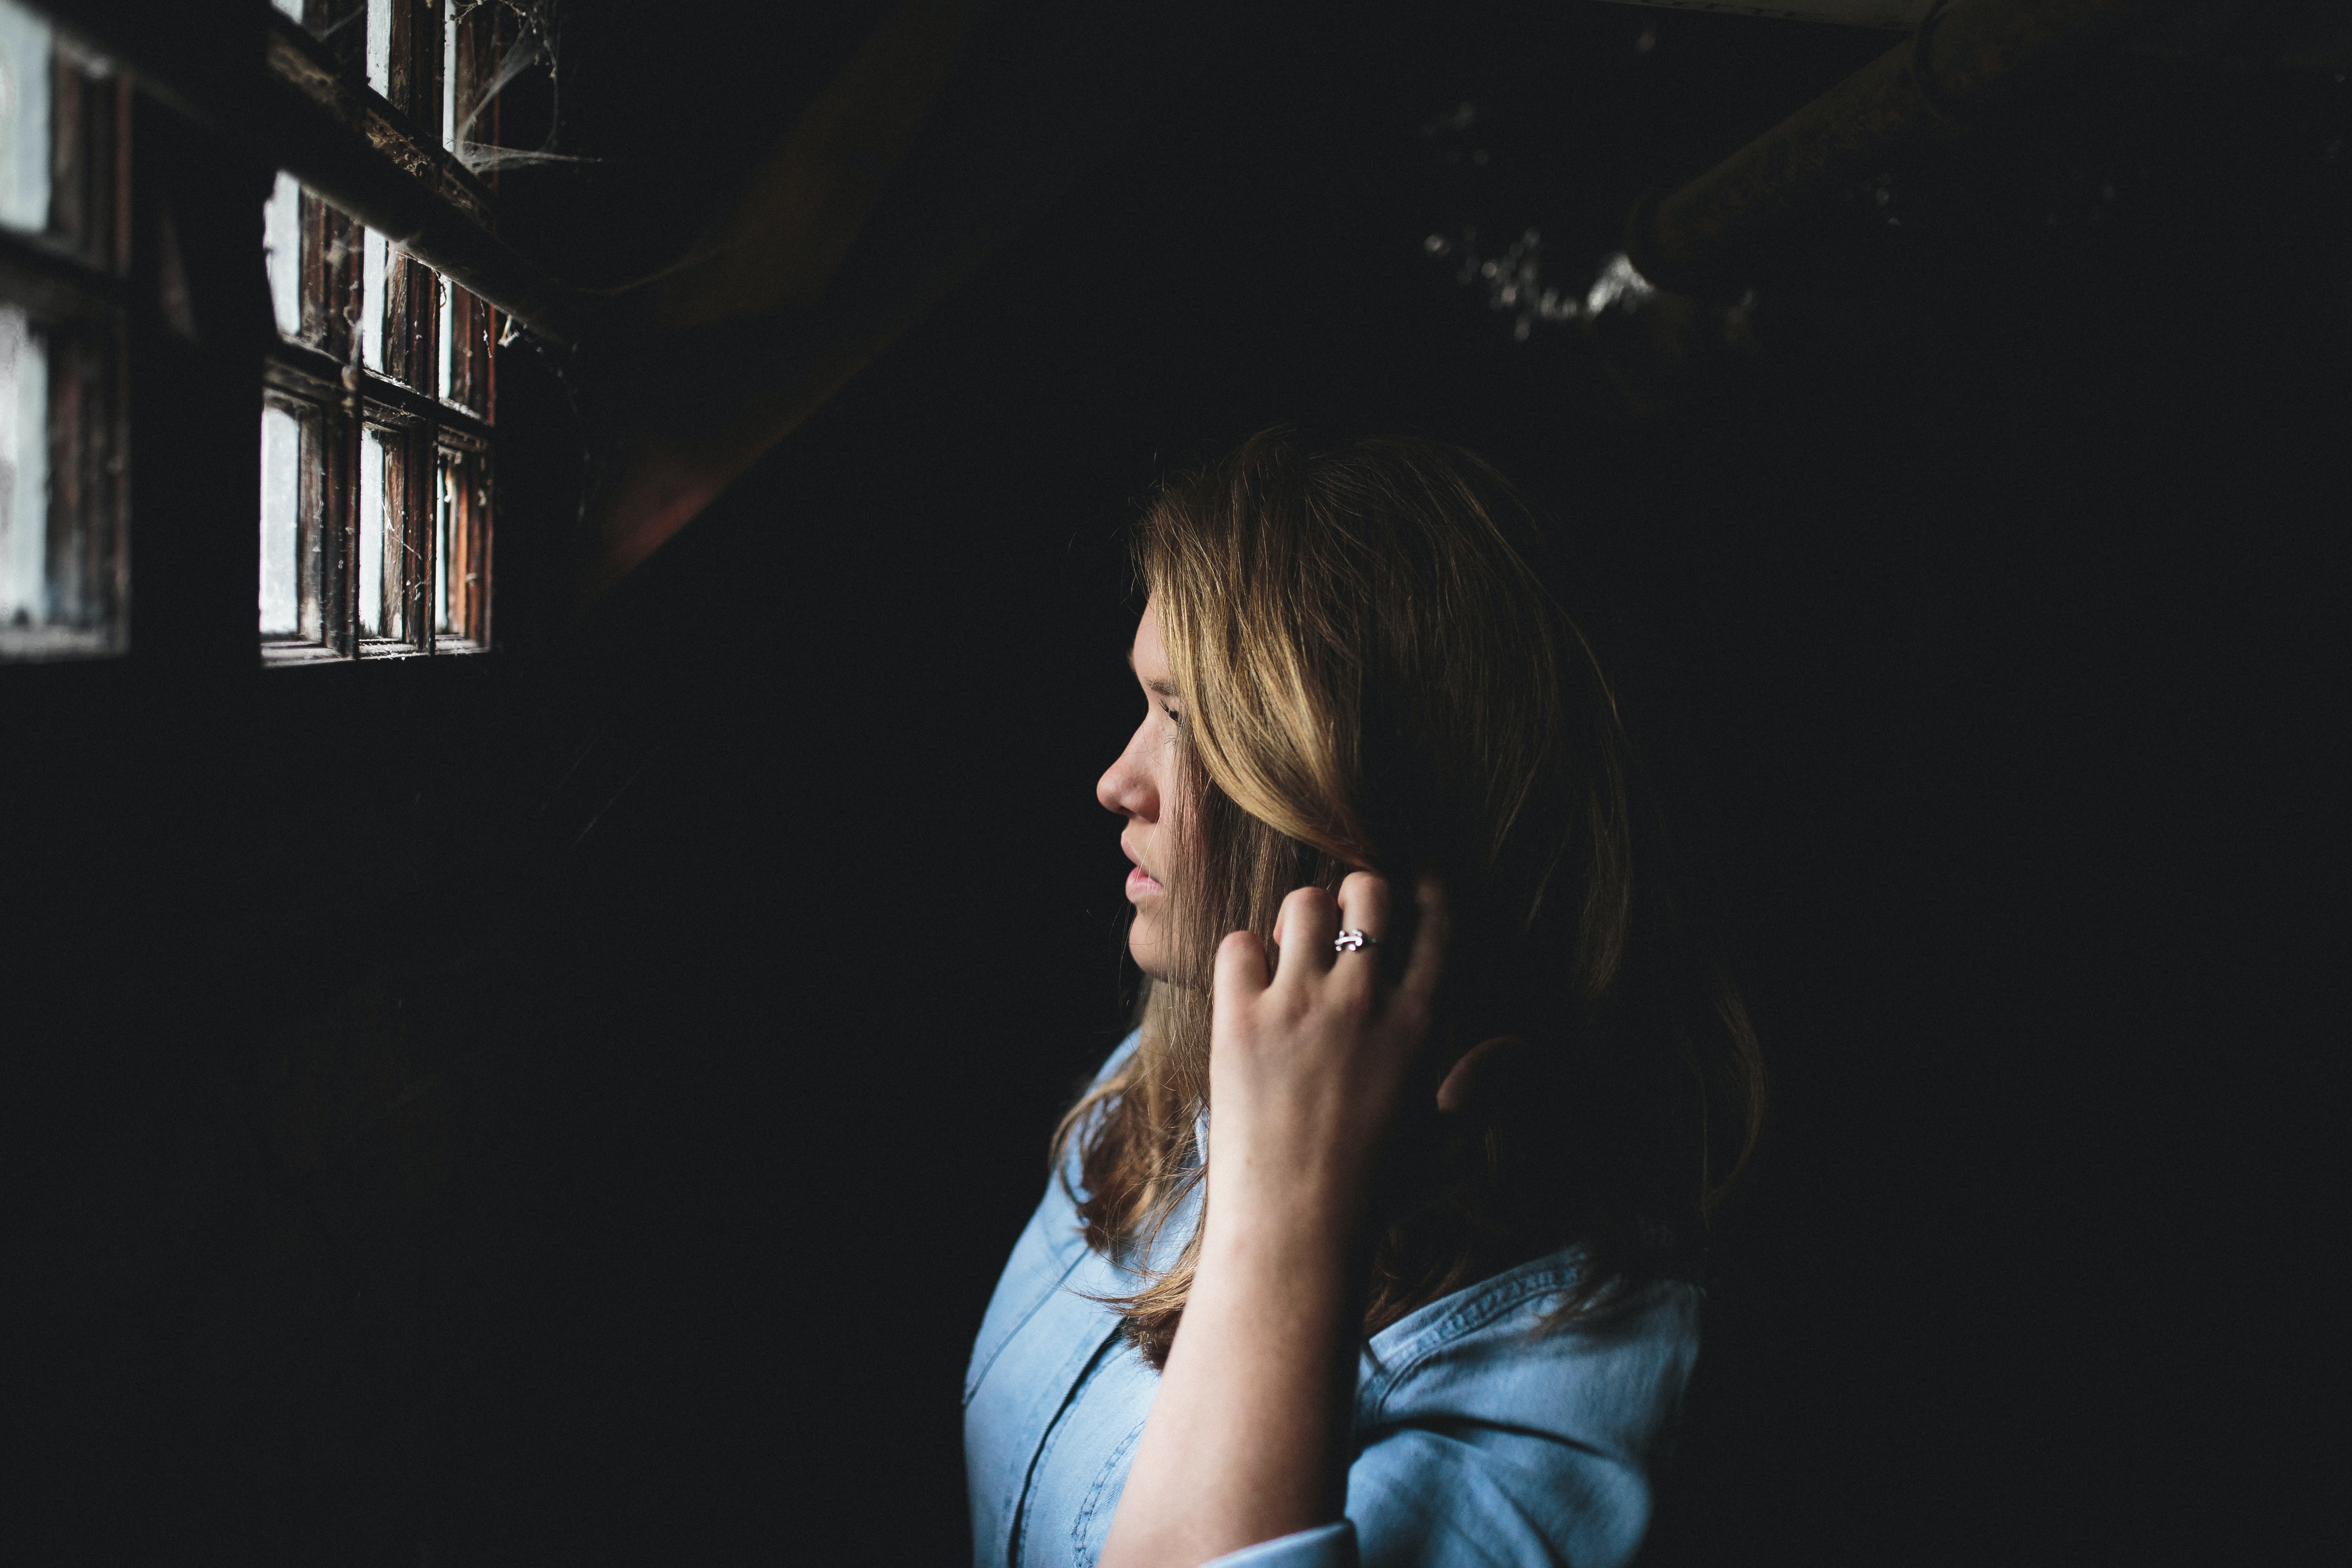 Woman with blonde hair wearing a blue shirt and ring looking out of a window covered in spider webs